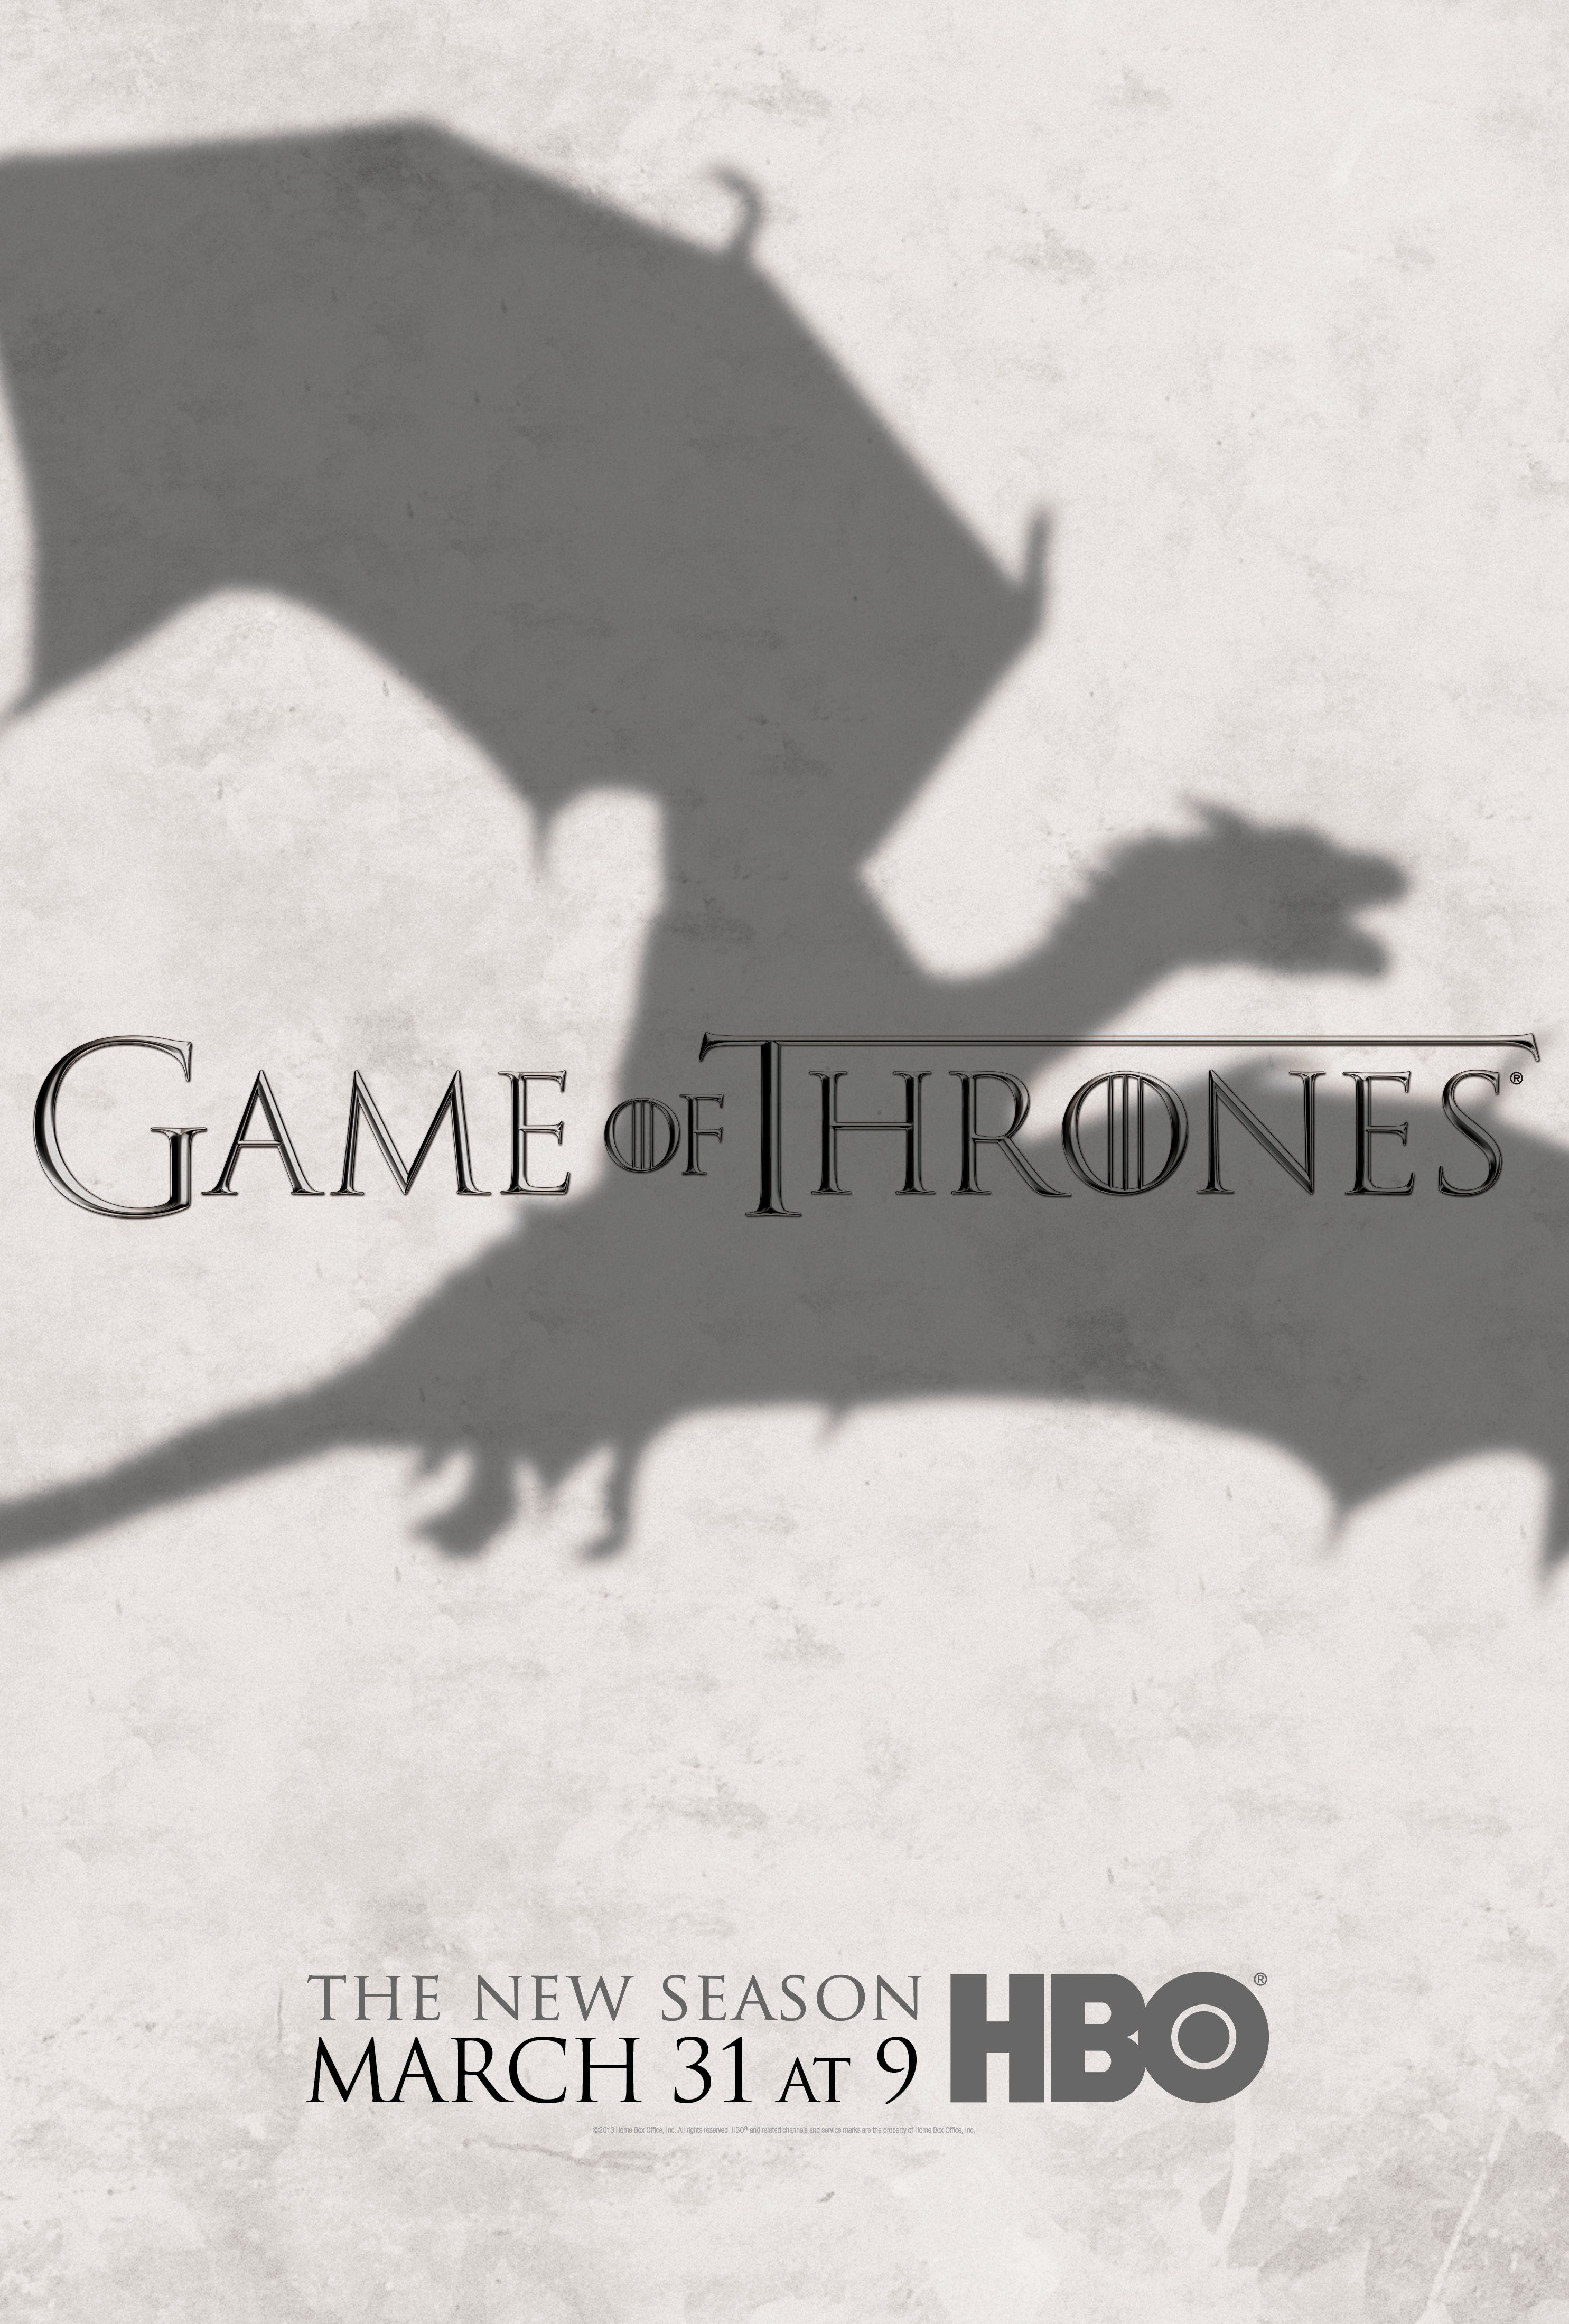 Affiche de la saison 3 de Game of Thrones